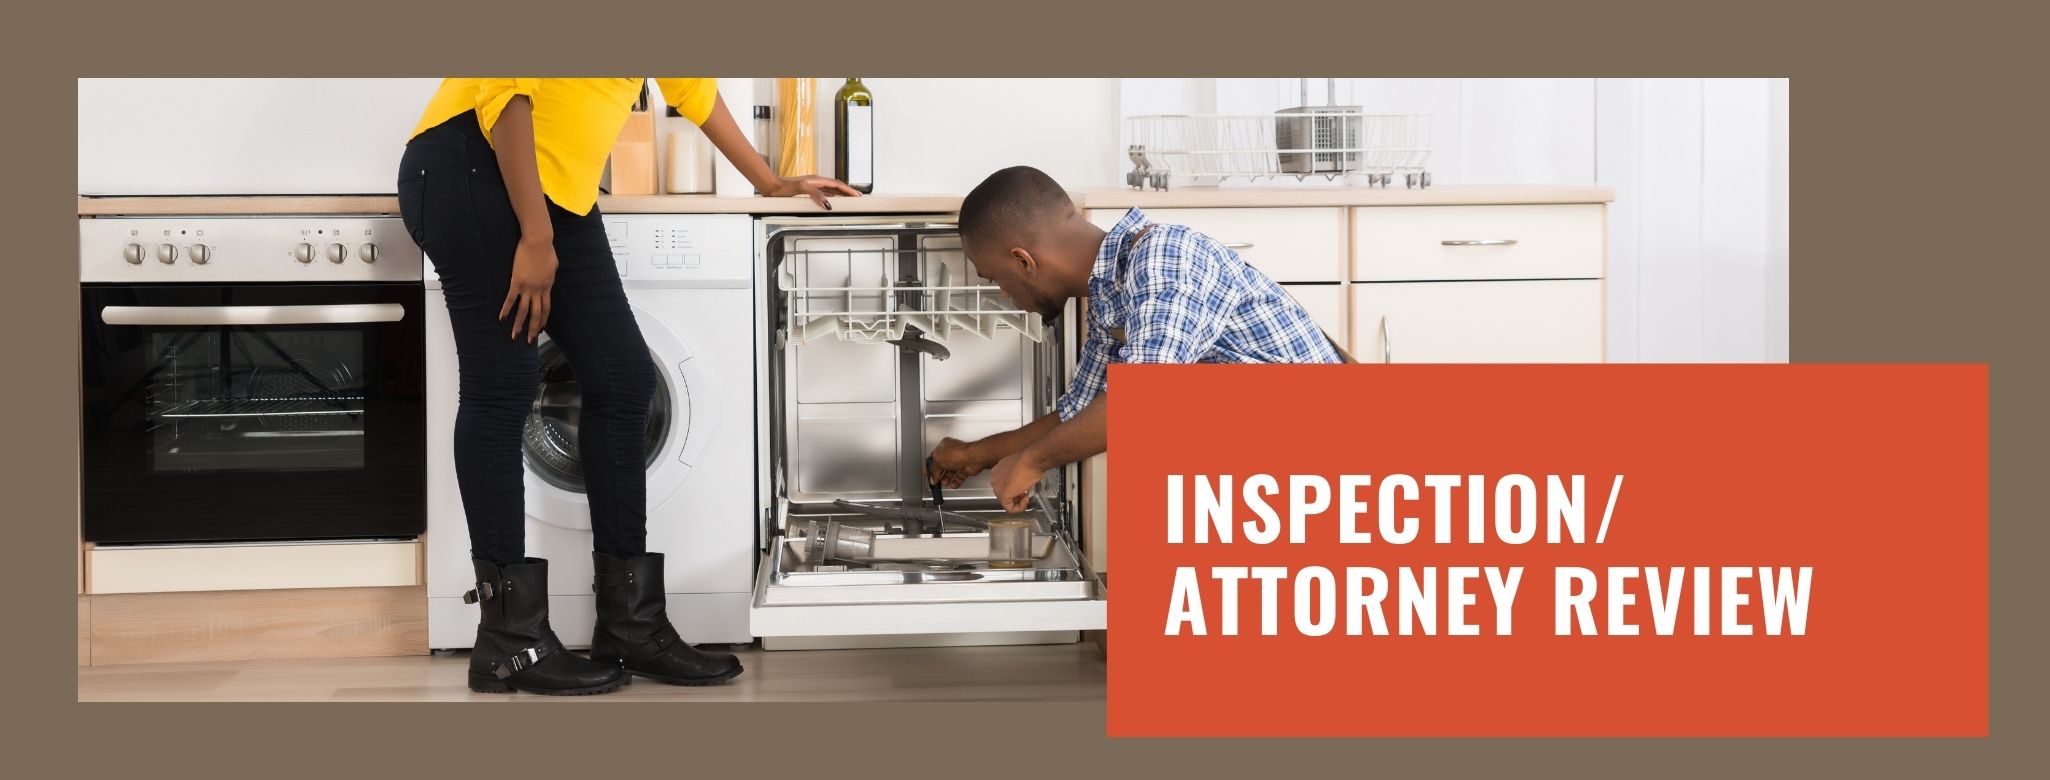 Attorney Review/Inspection